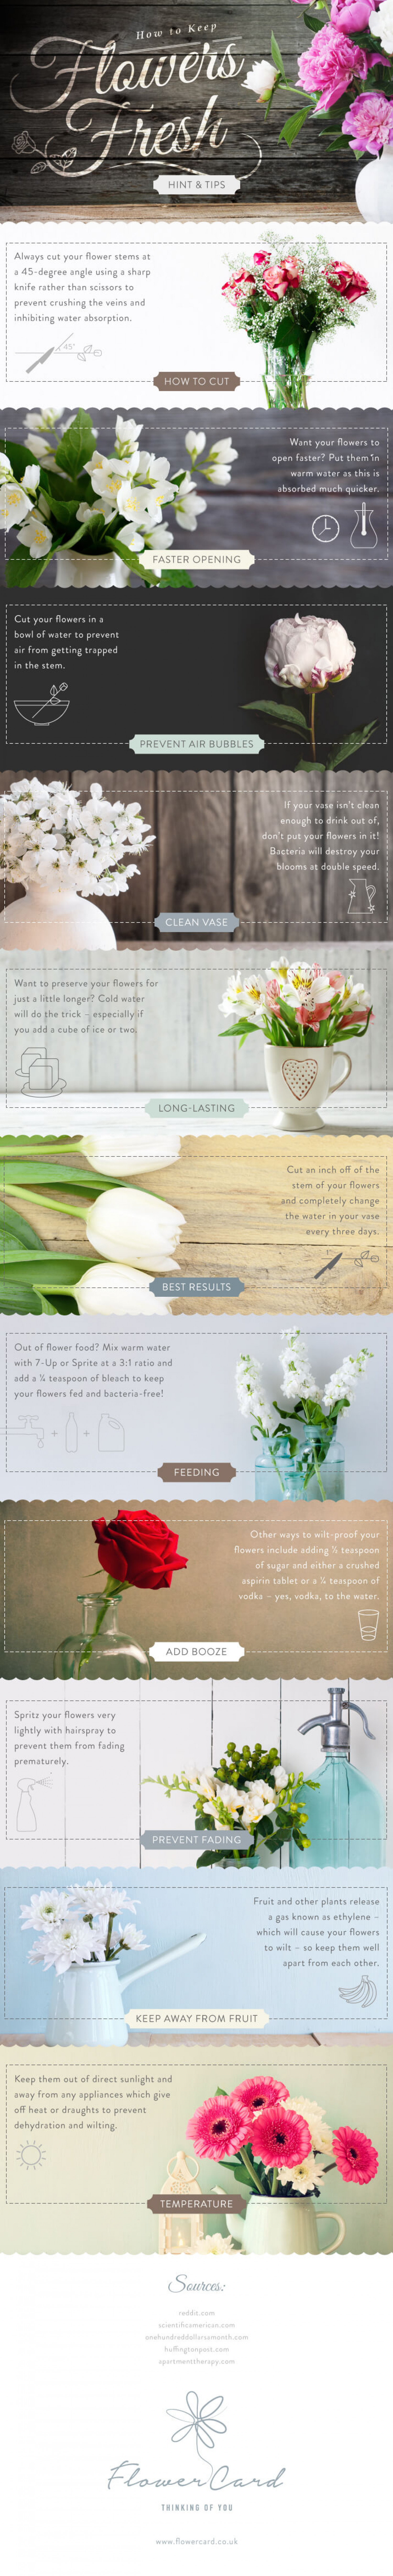 How To Keep Flowers Fresh For Longer Infographic